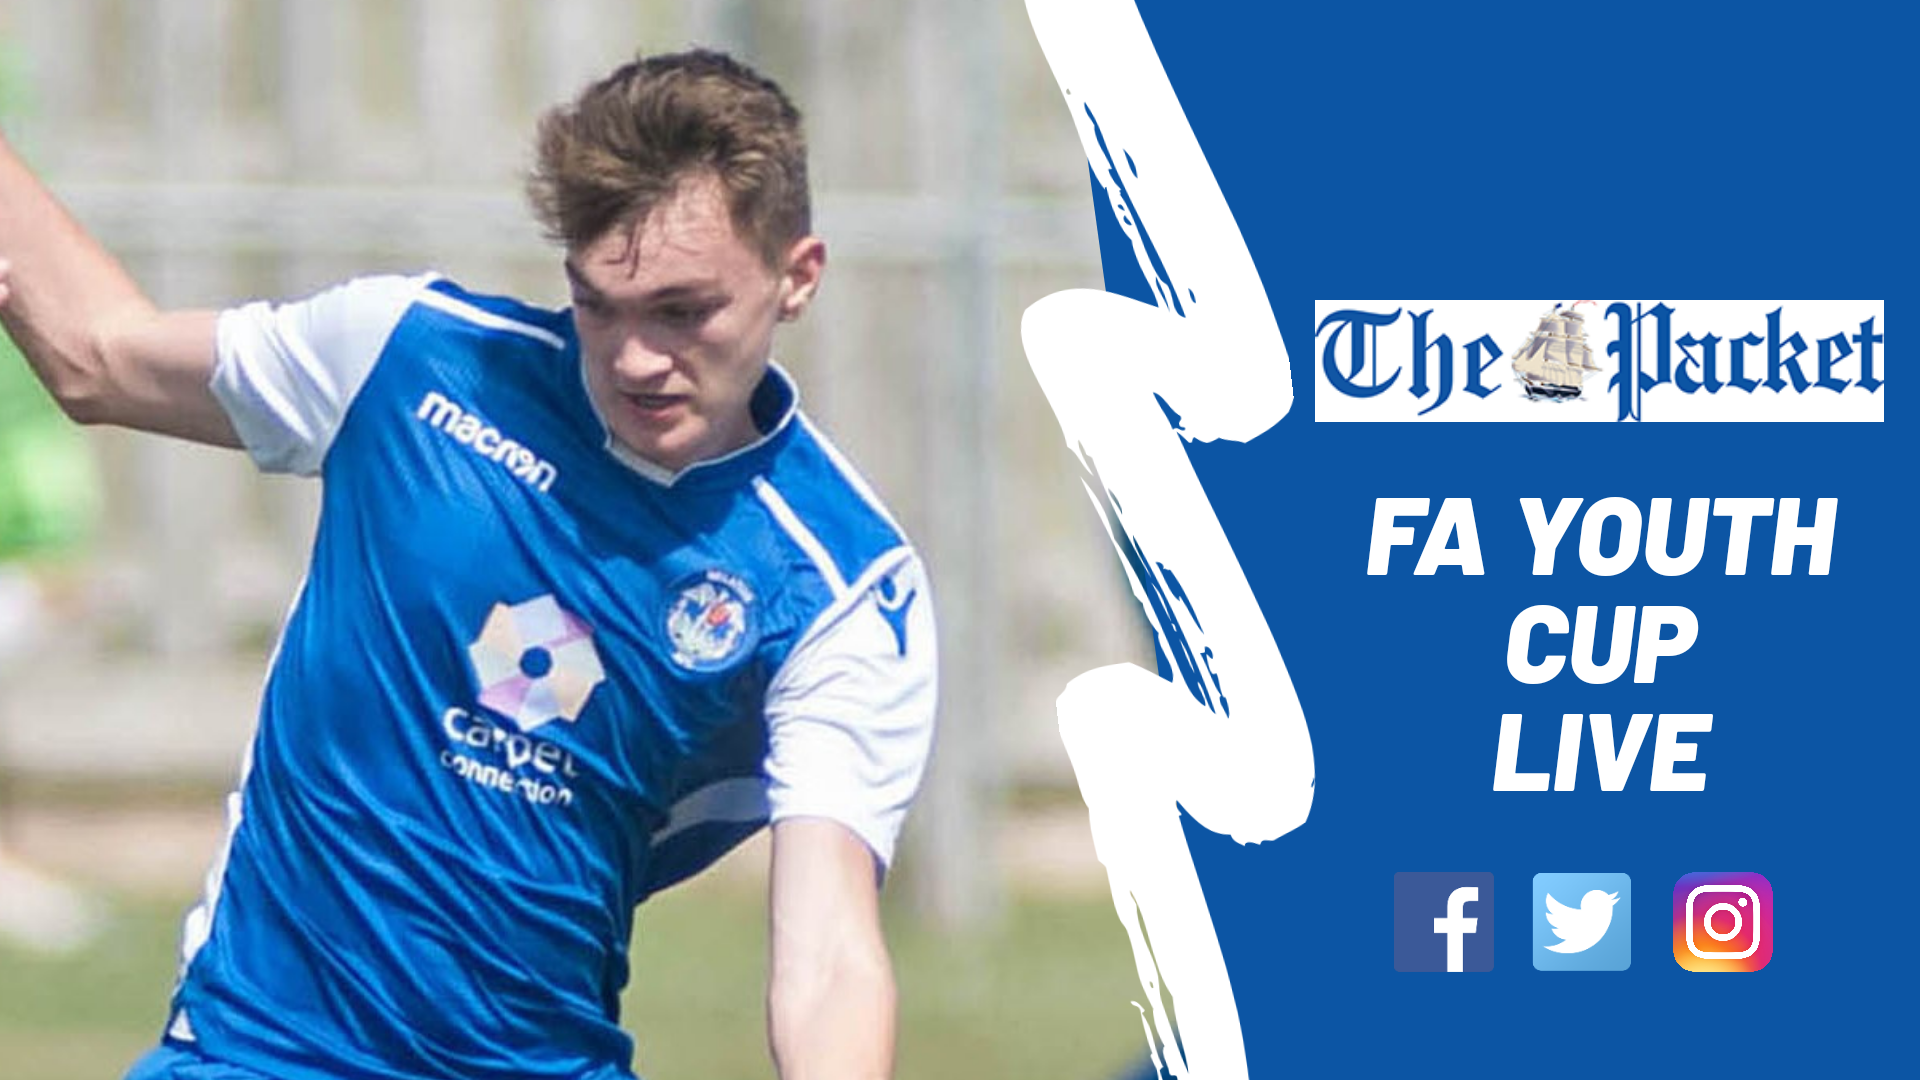 FA YOUTH CUP LIVE: Helston Athletic under-18s bid to reach first round proper